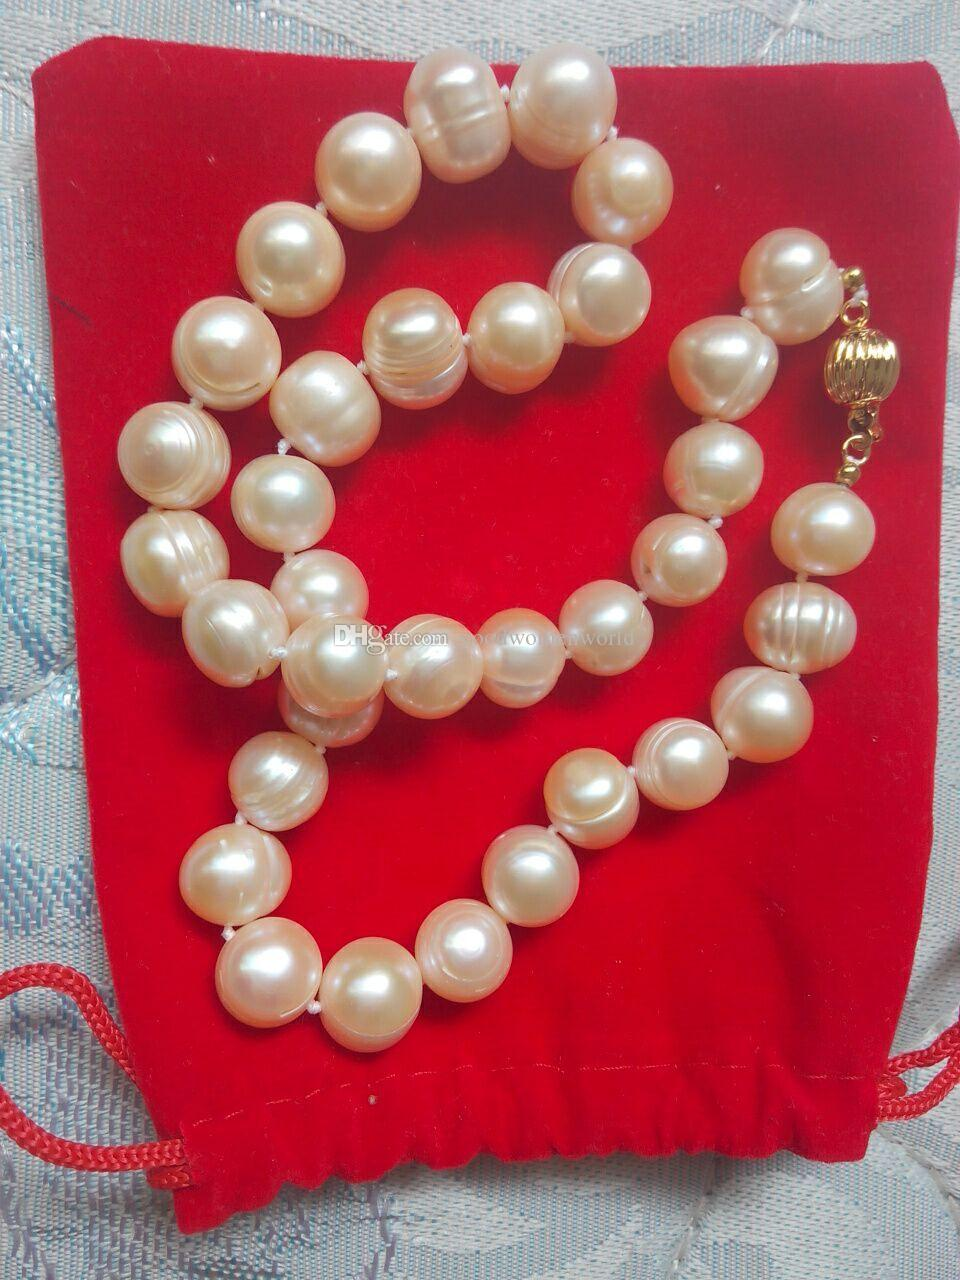 2019 Fast New Fine Pearl Jewelry 100 Natural 18inches 11